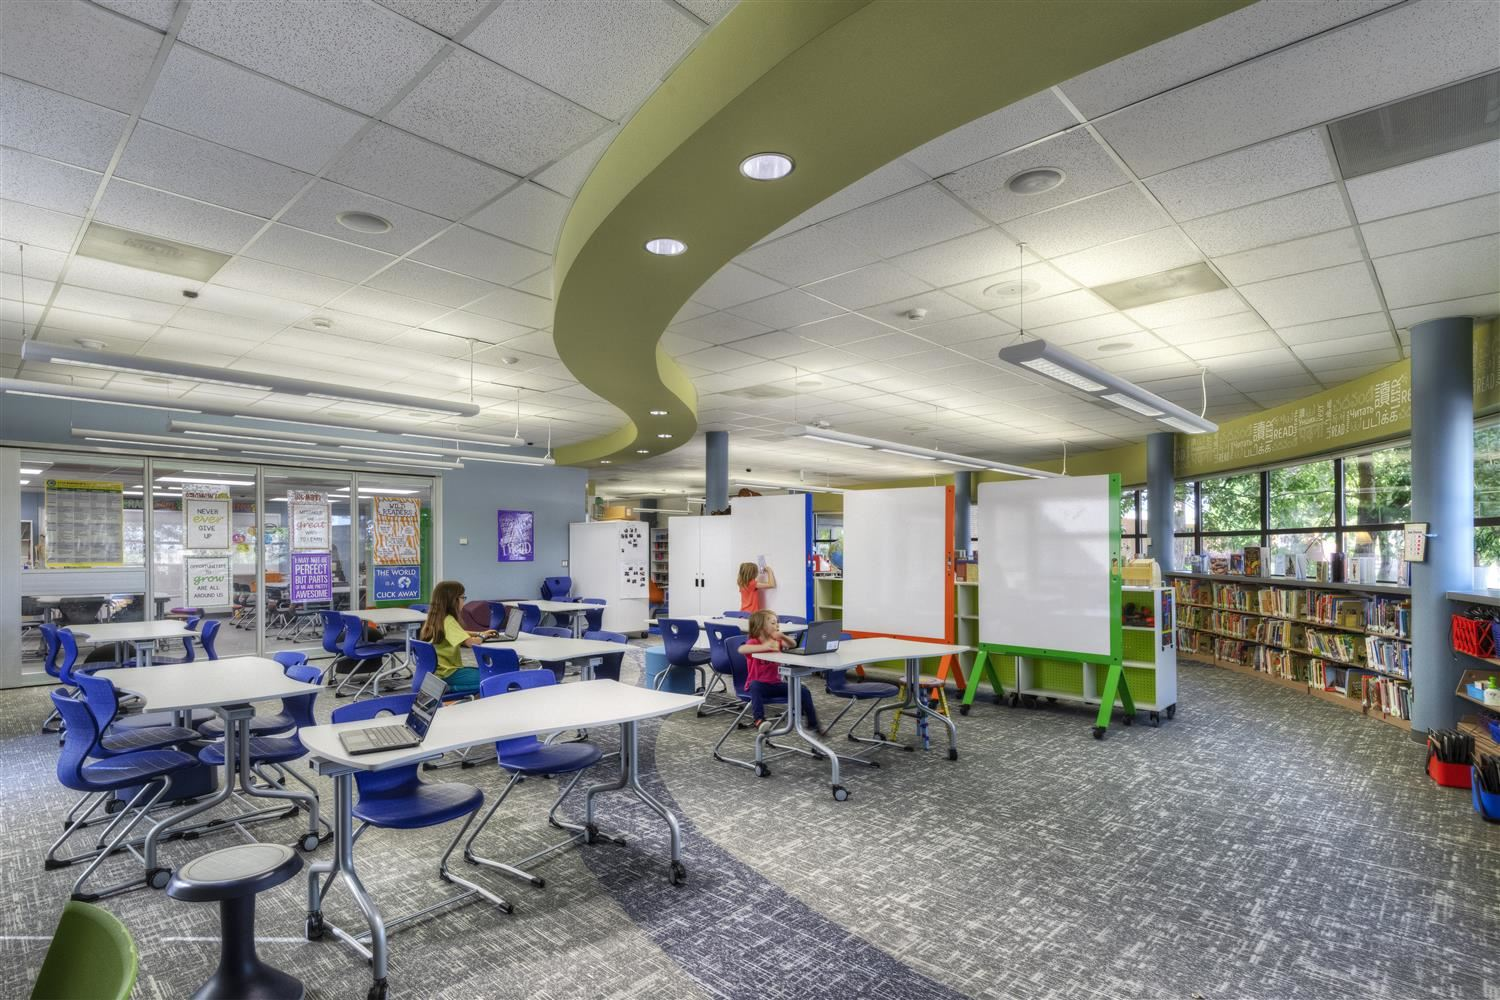 Image of new Innovation space at Belleview Elementary.